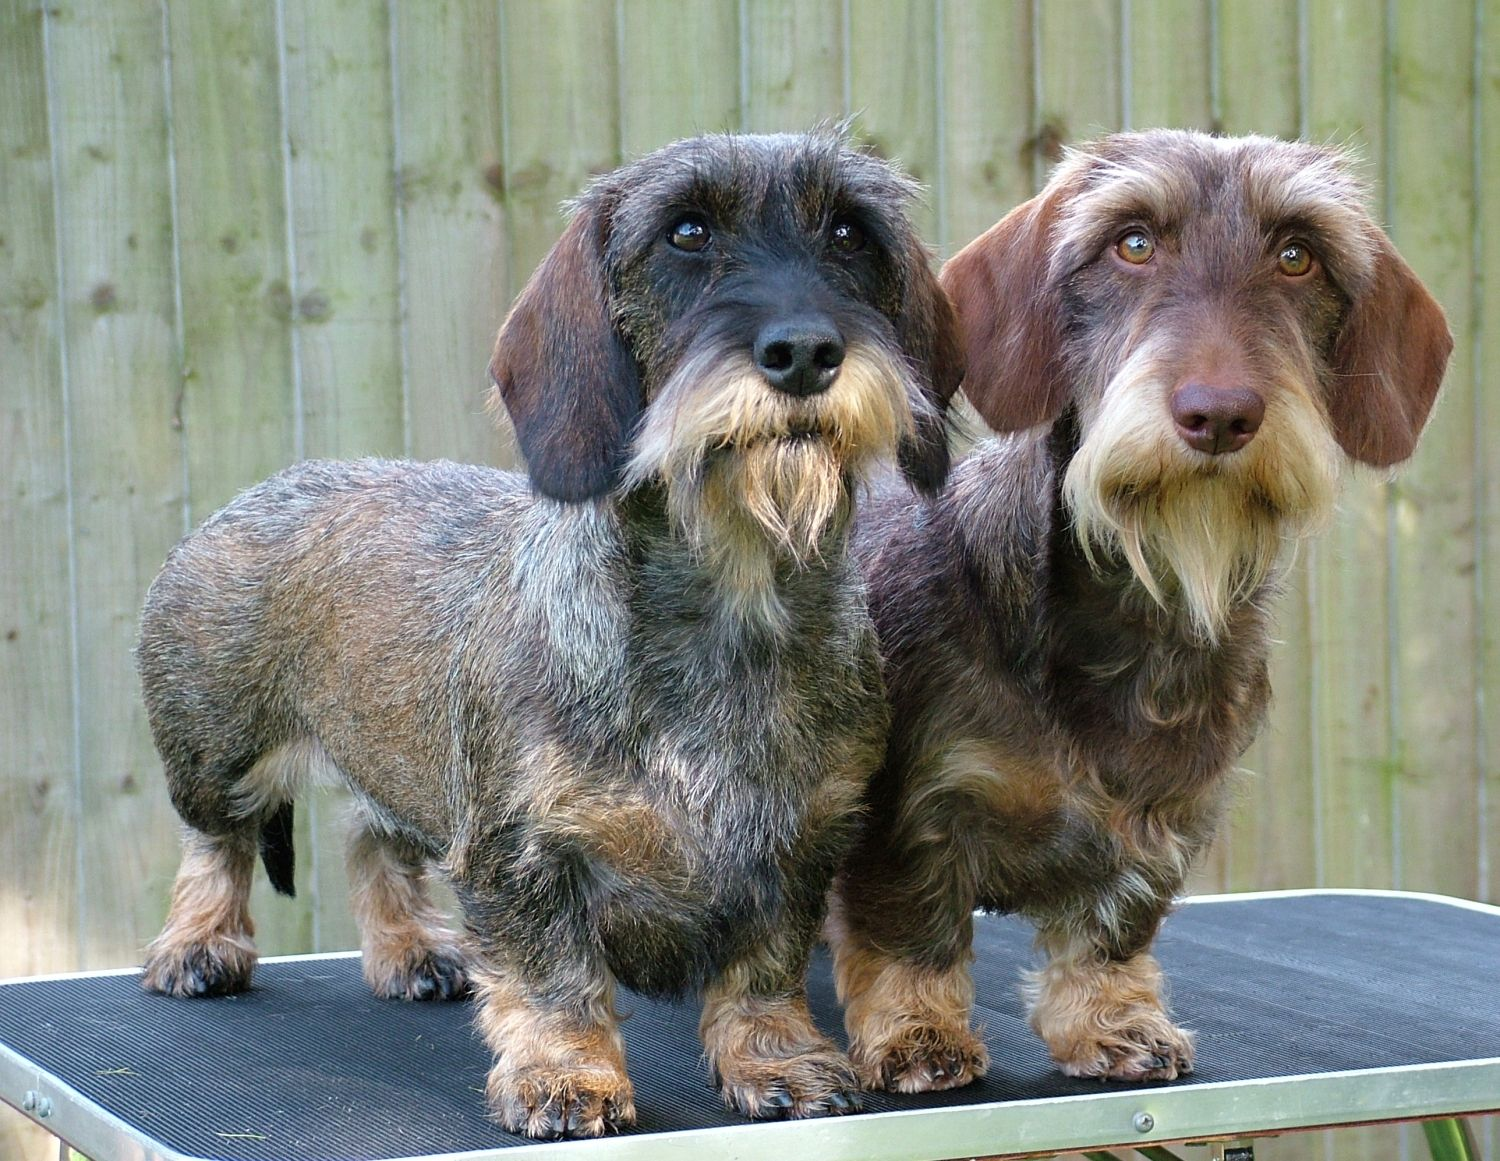 Crunchie And Cadbury Posing Wire Haired Dachshund Dachshund Love Wirehaired Dachshund Puppy